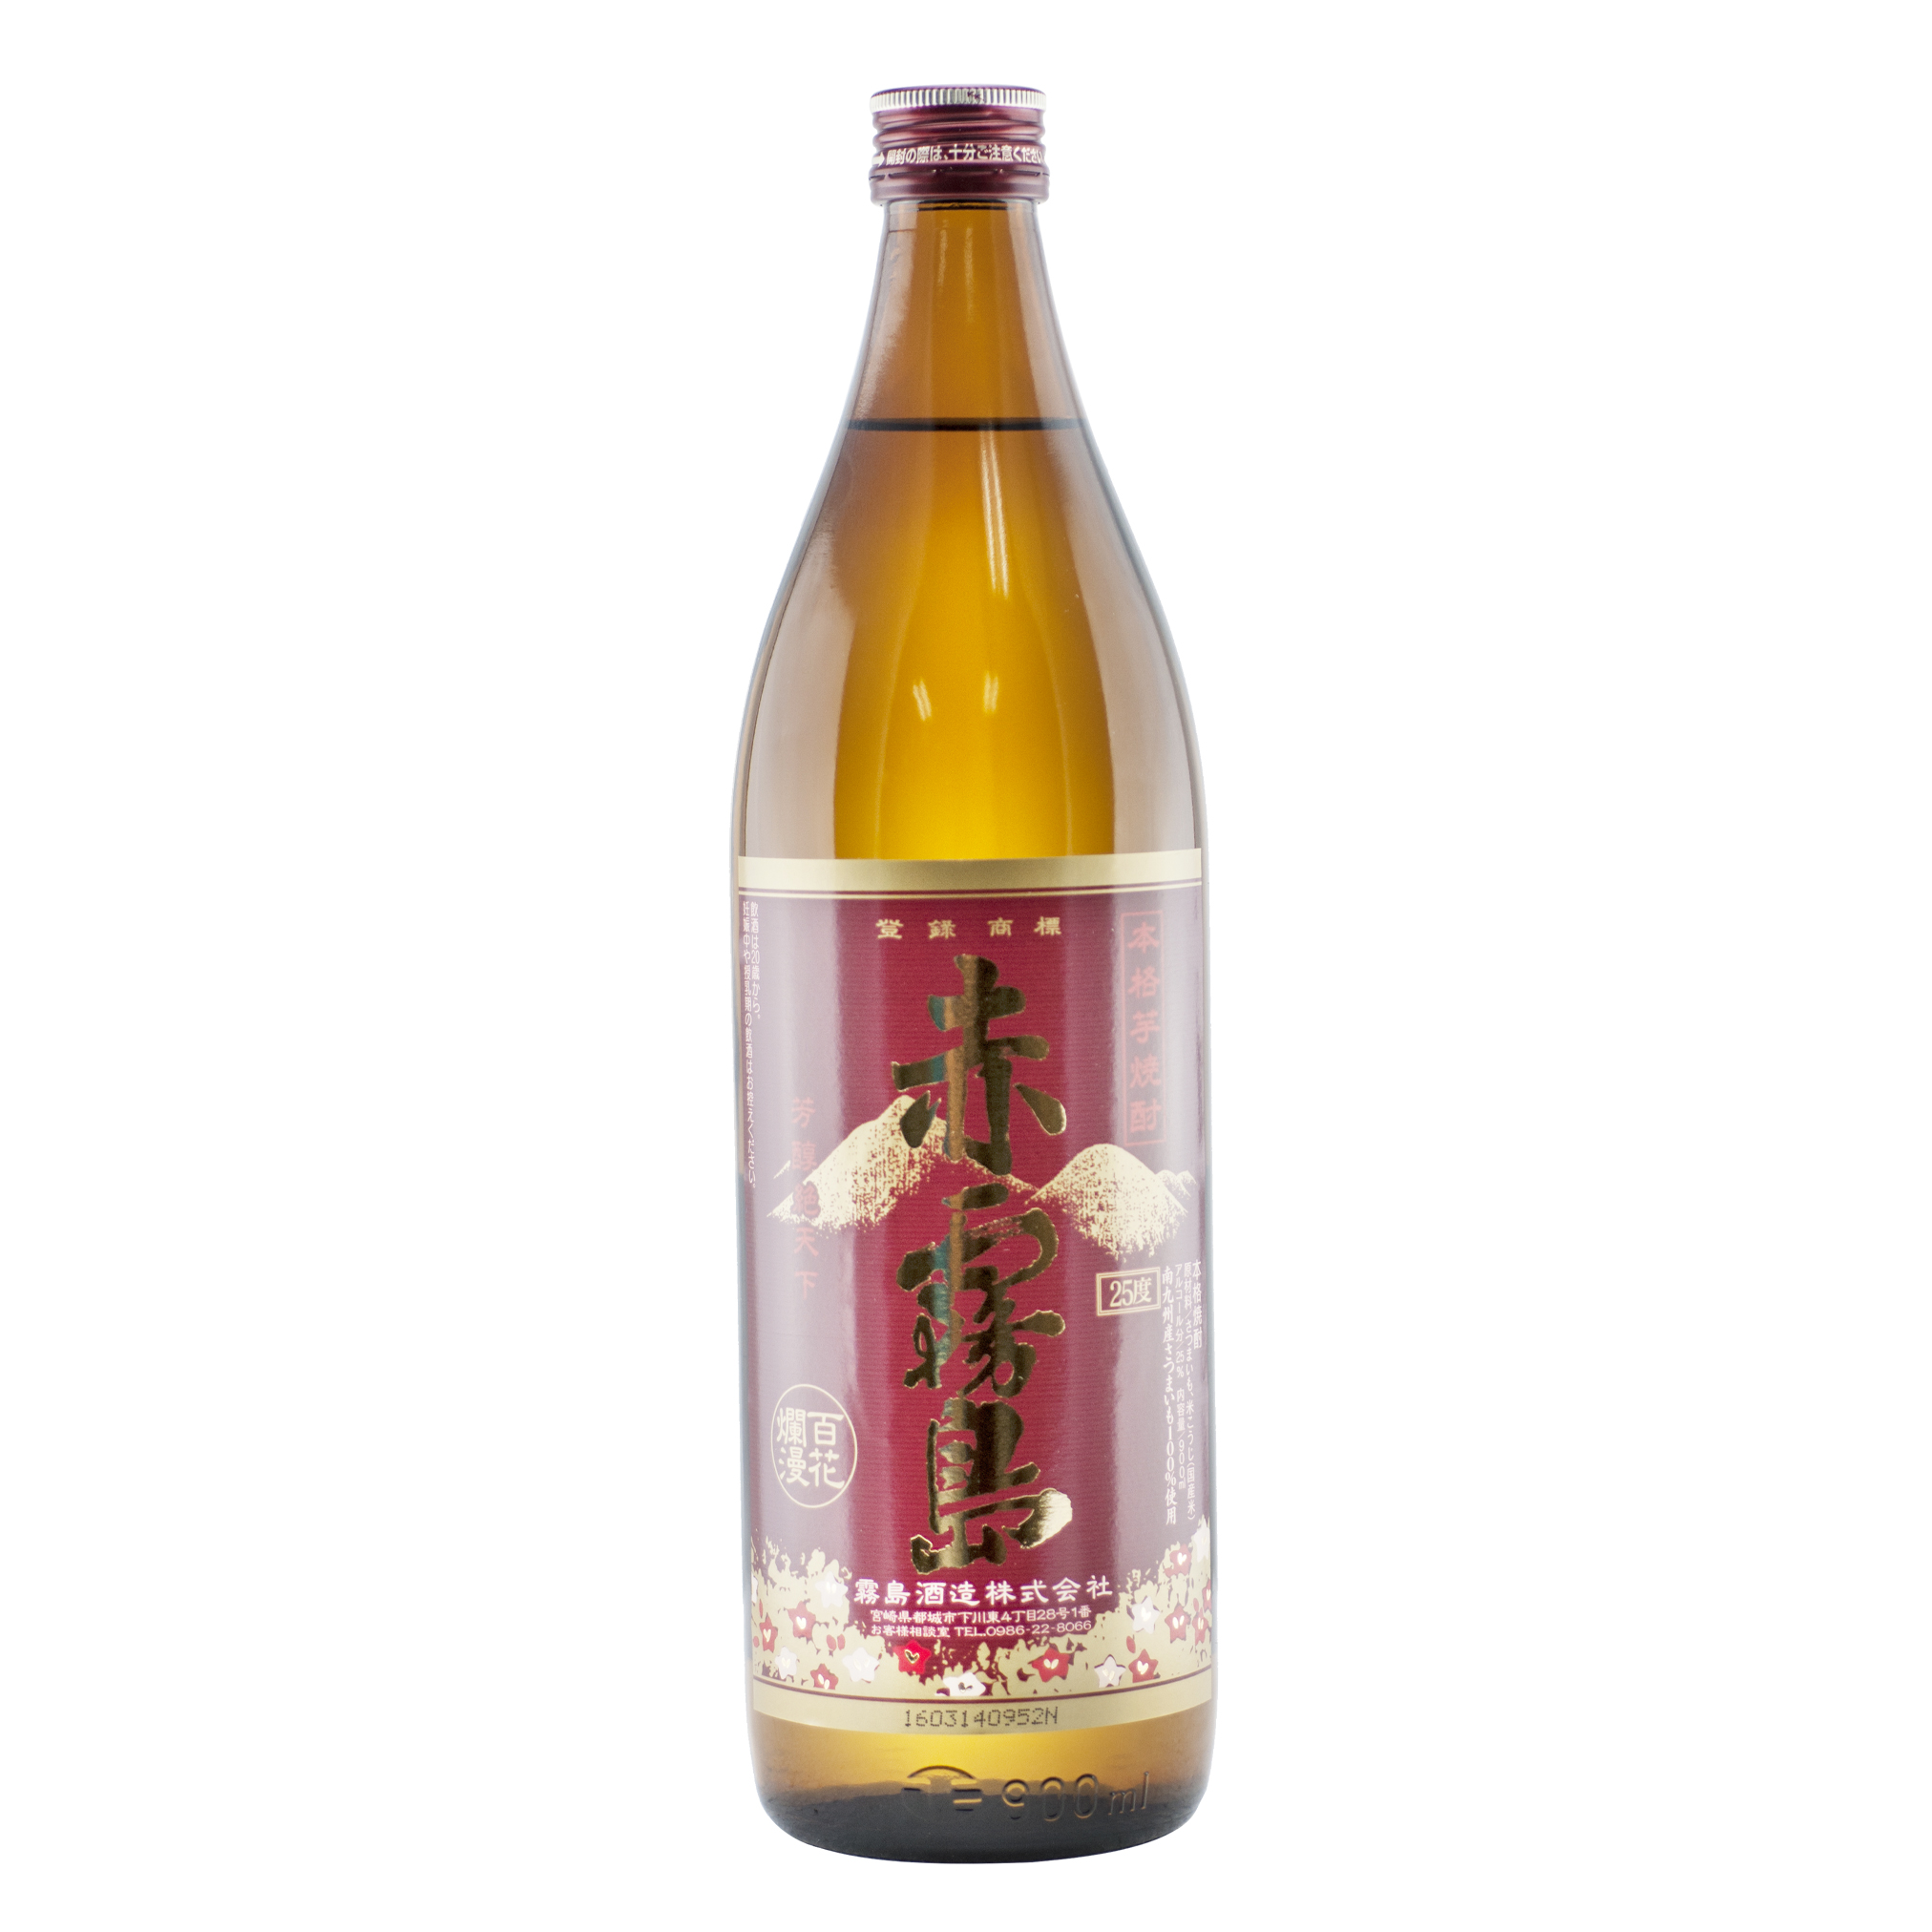 Kirishima Aka Imo Shochu 25% 900ml